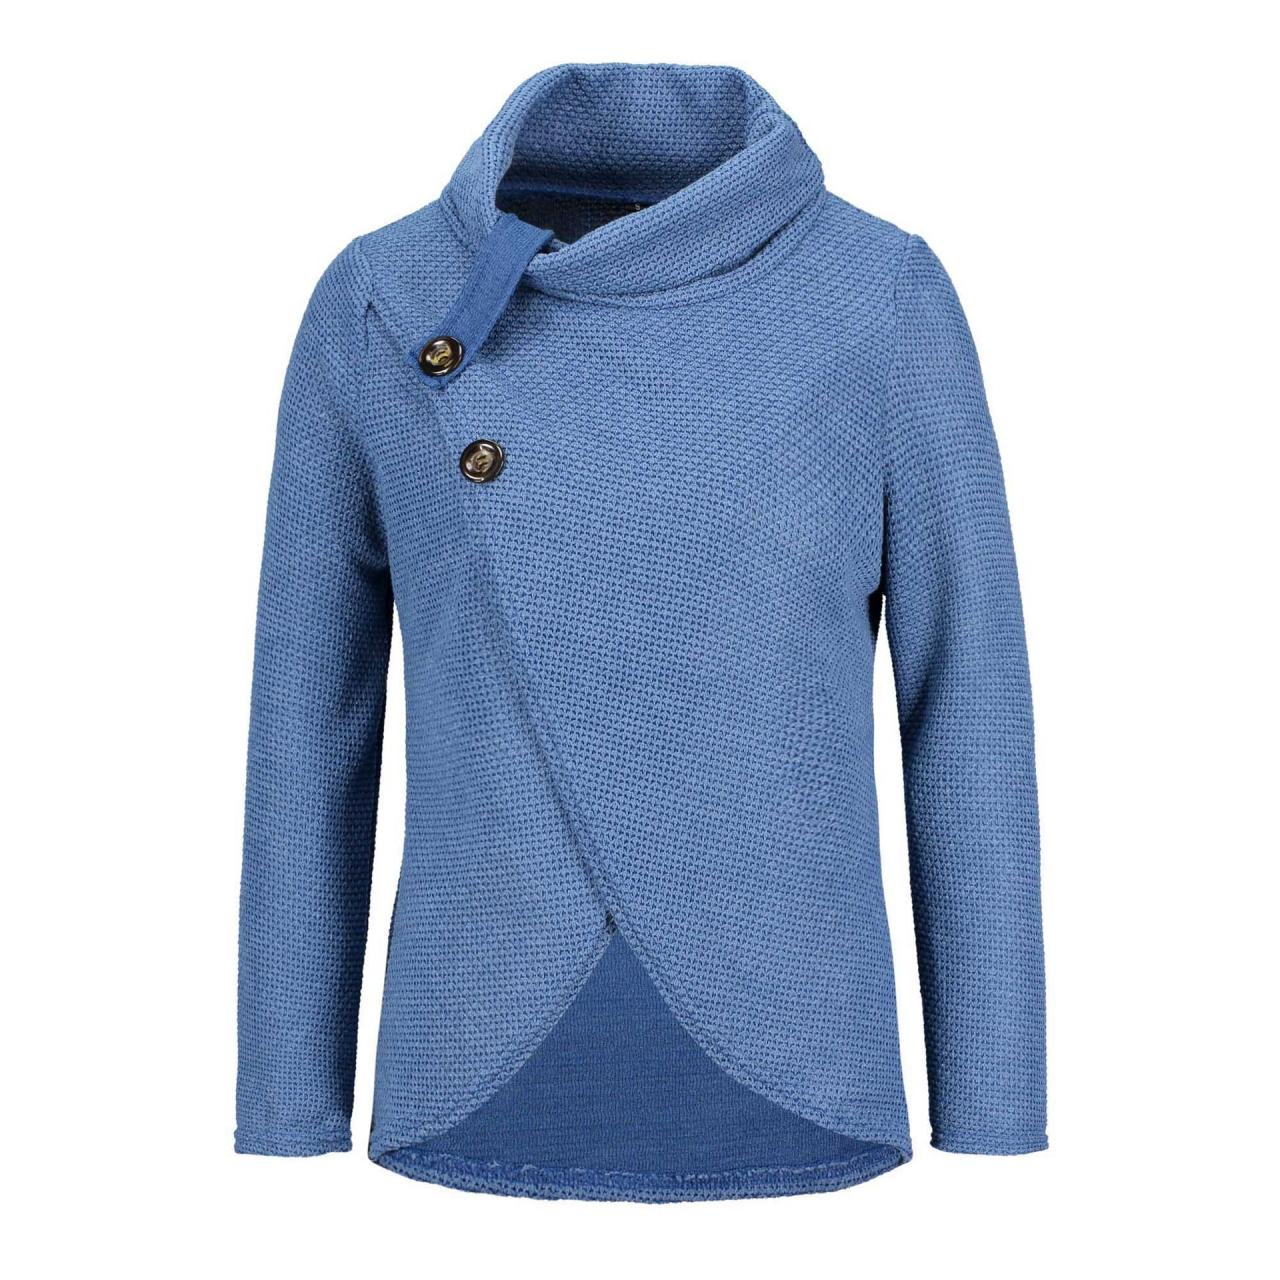 Women High Neck Sweater Buttons Loose Long Sleeve Asymmetrical Jumper Knitted Pullover Shirt blue